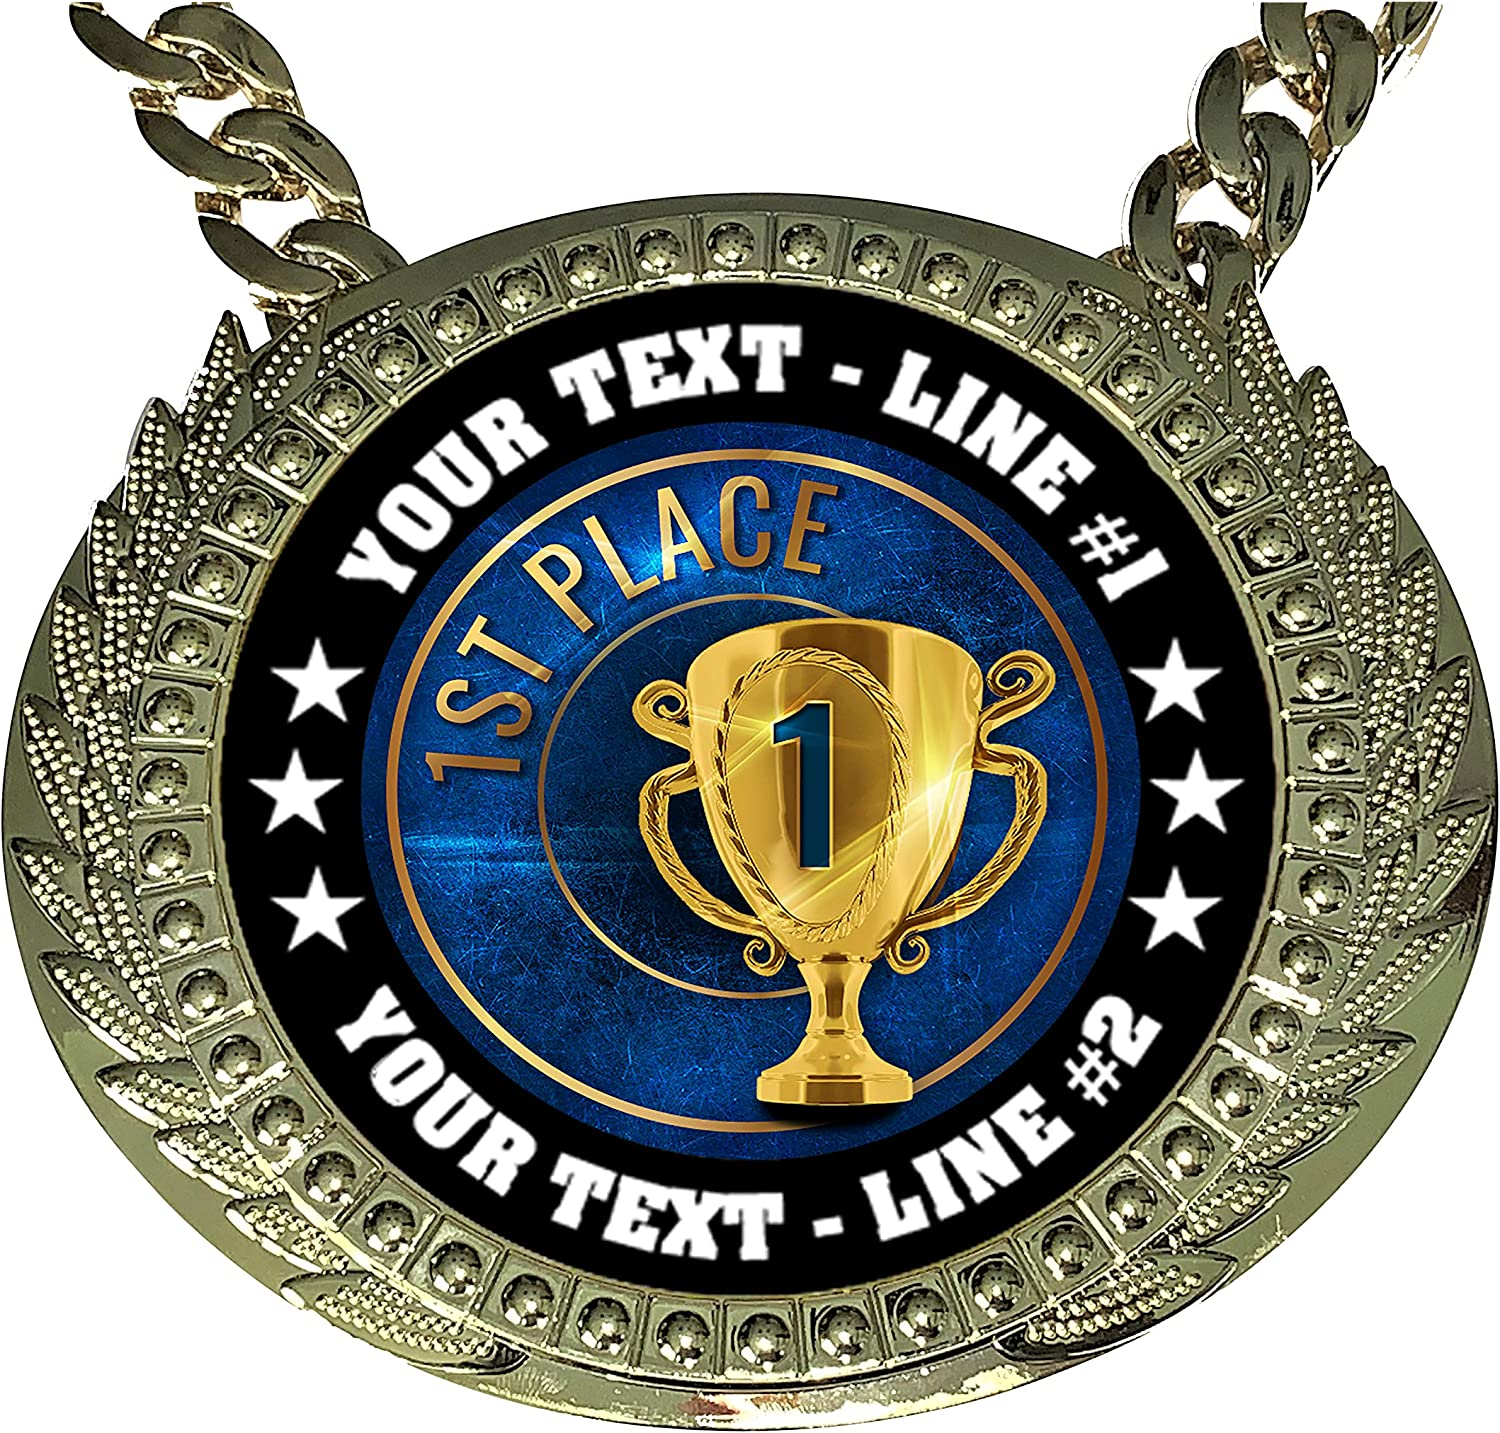 Express Medals Custom 1st Place Champ Chain Trophy with 2 Lines of Personalized Text on a Large Rigid Plastic Award Medal and 34 Inch Long Gold Color Neck Chain EG1